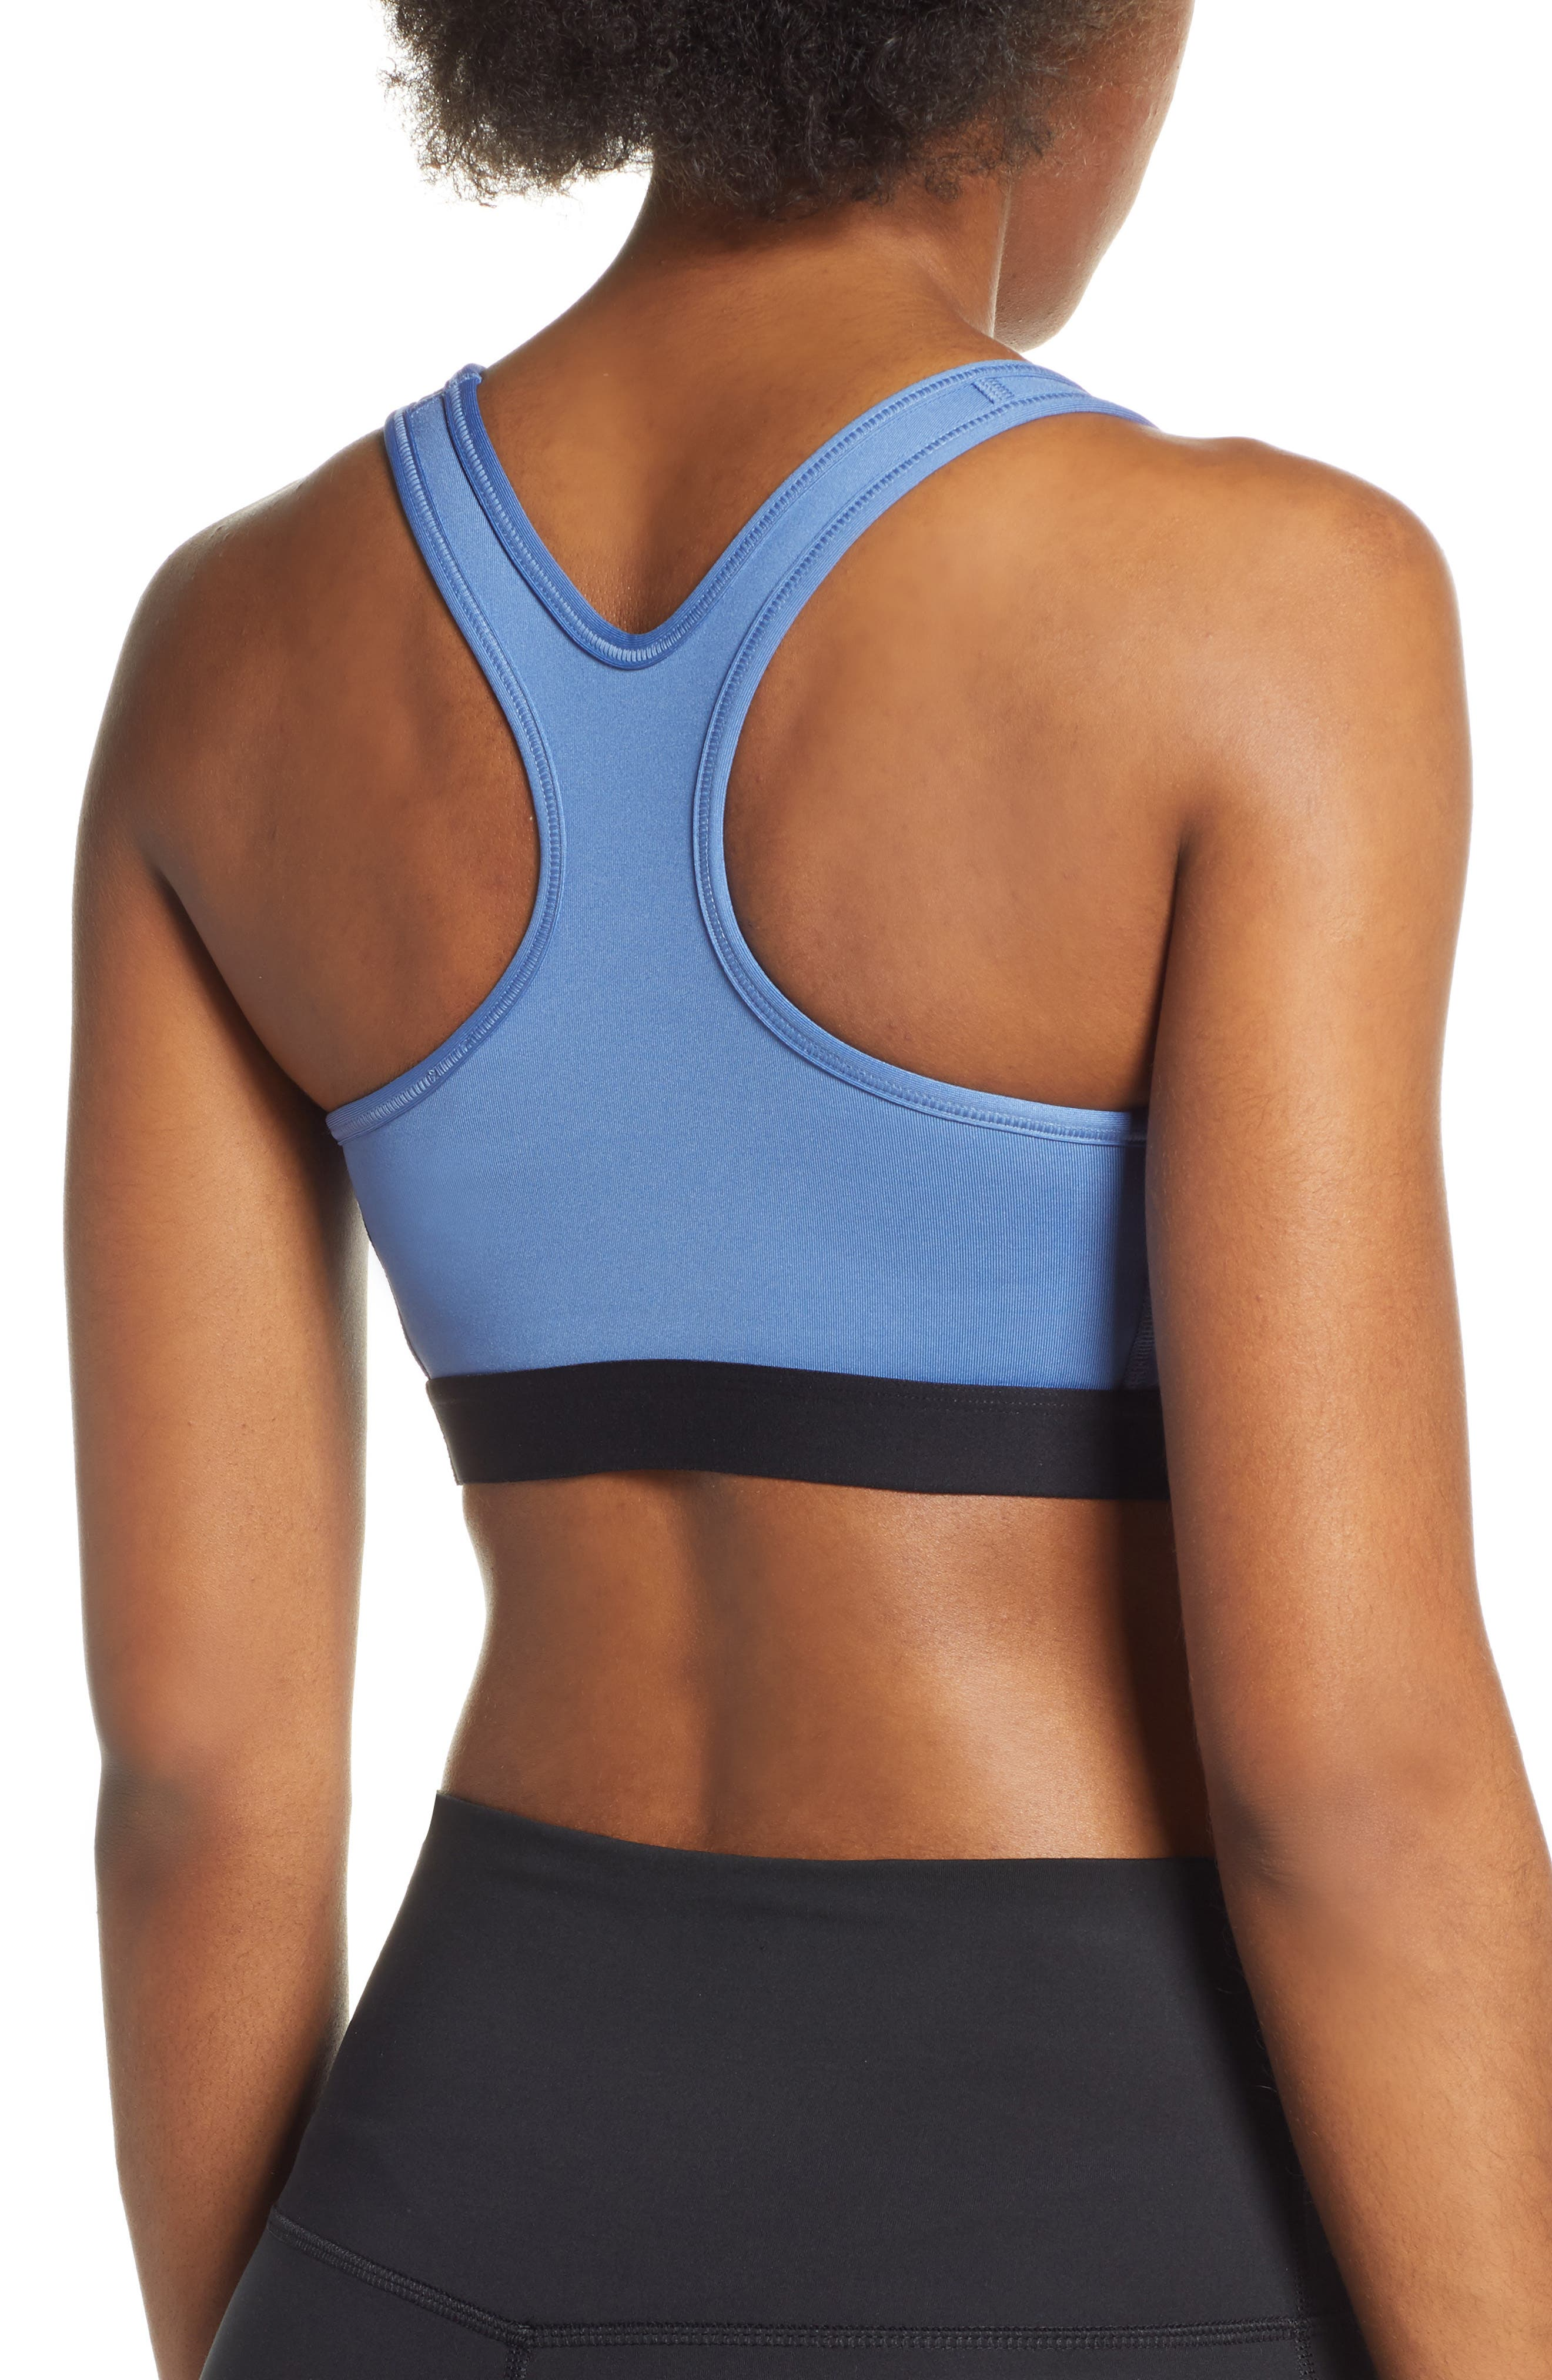 f65604279 Women's Nike Clothing | Nordstrom